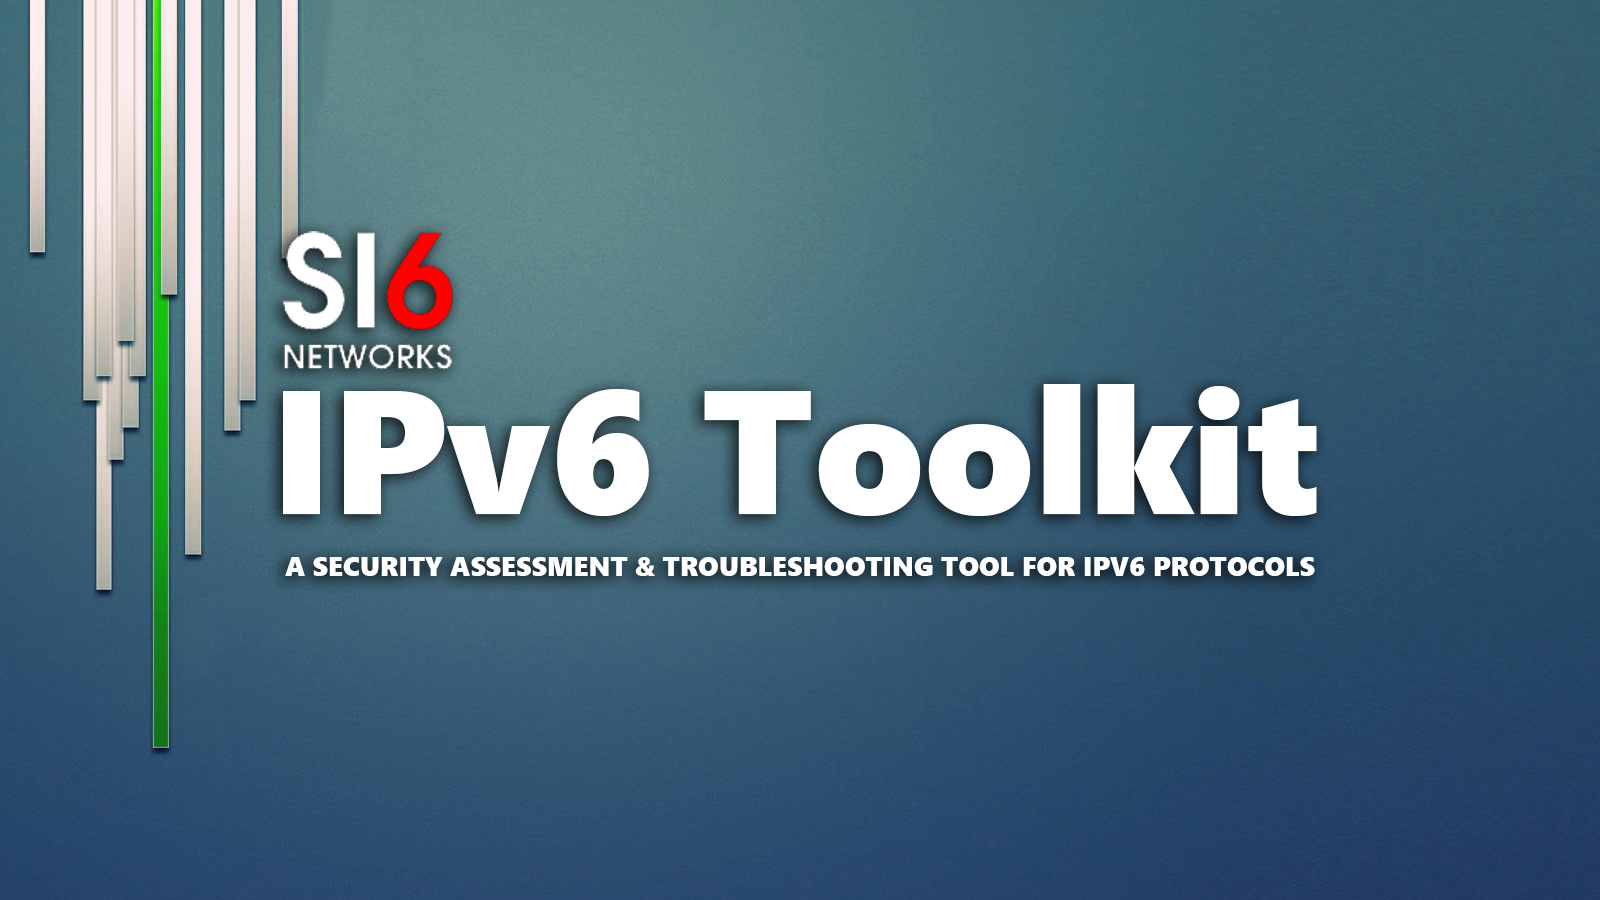 SI6 Networks' IPv6 Toolkit Security Assessment & Troubleshooting Tool For IPv6 Protocols